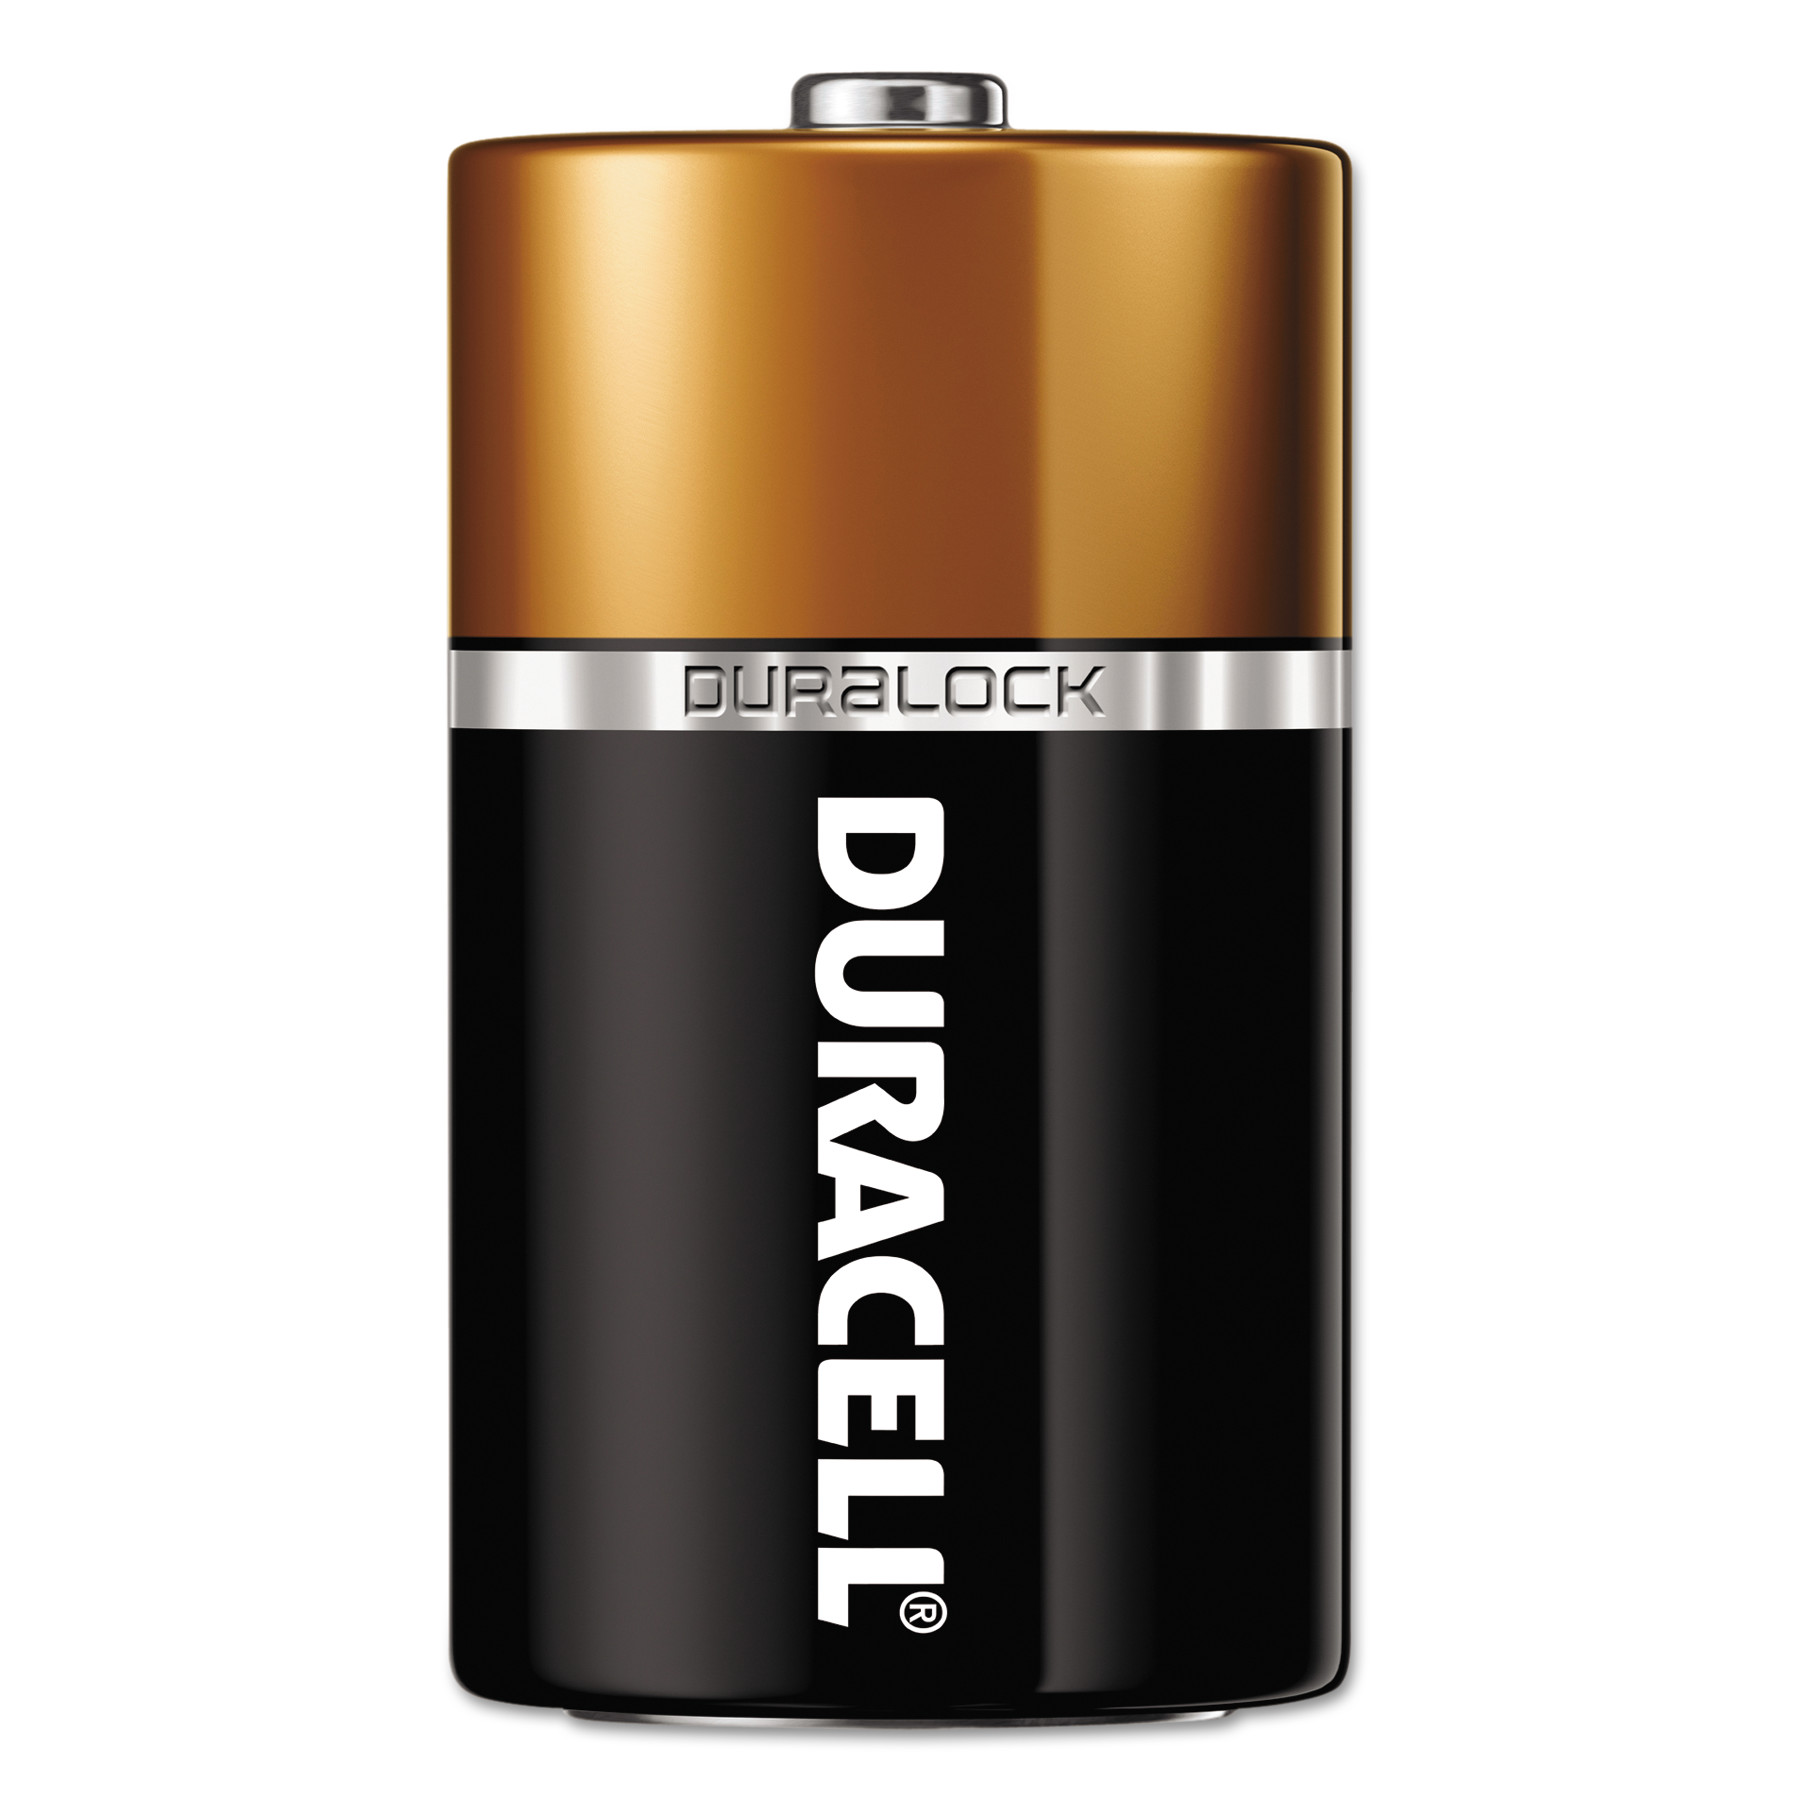 Duracell CopperTop Alkaline Batteries, D, 72/CT -DURMN1300BKD